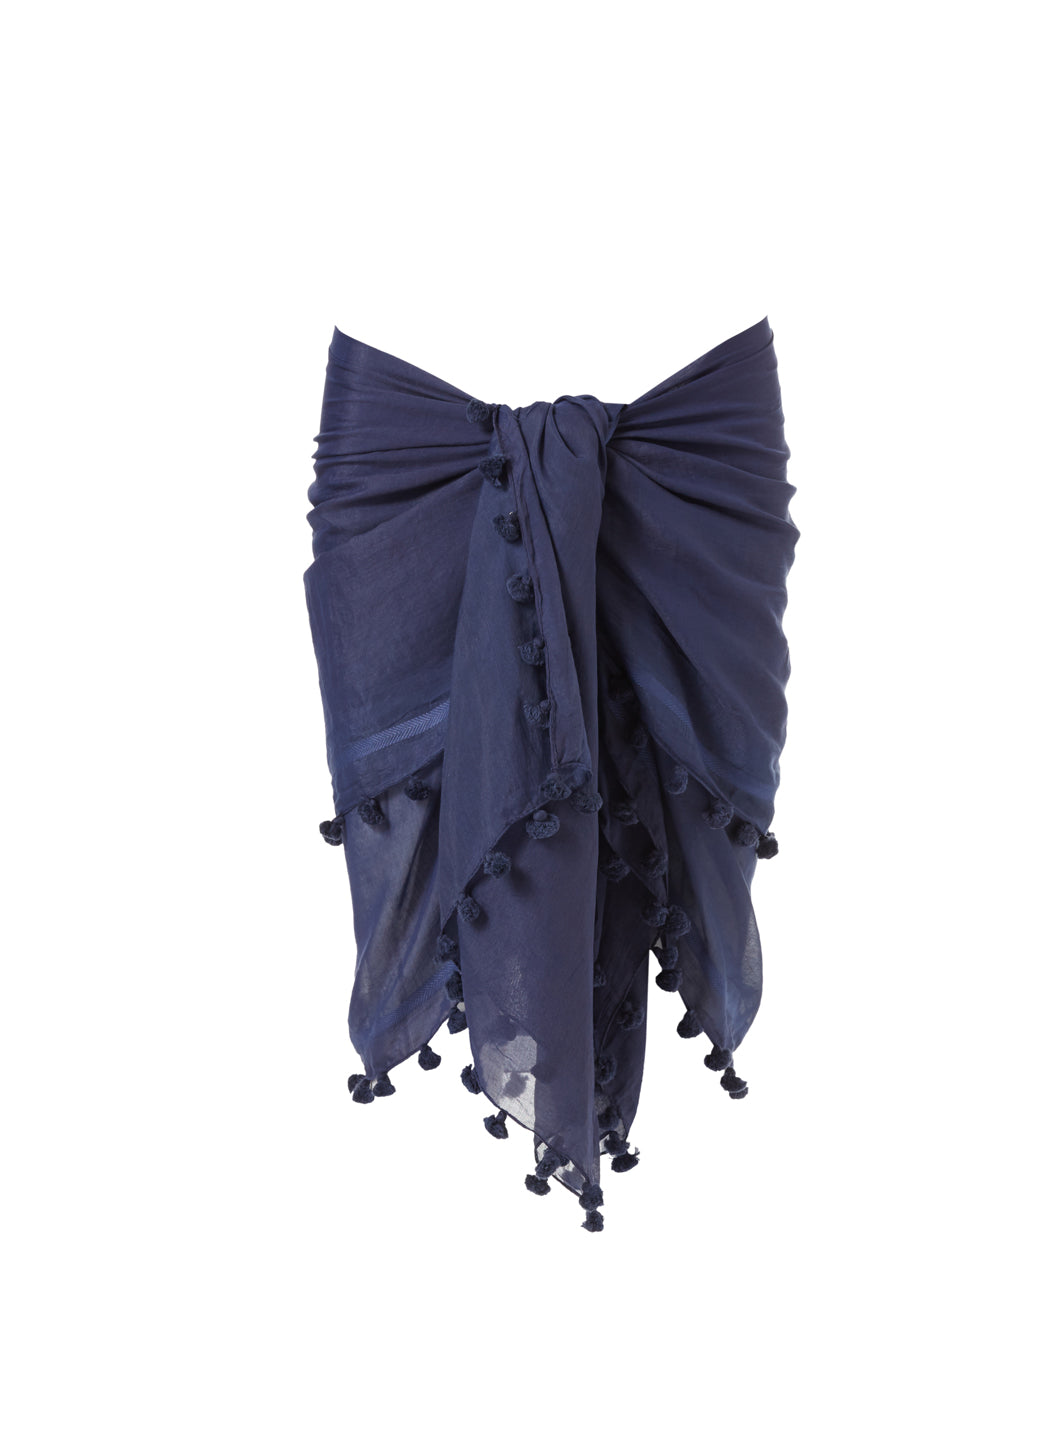 Pareo Navy Multi-Way Cover Up - Melissa Odabash Accessories